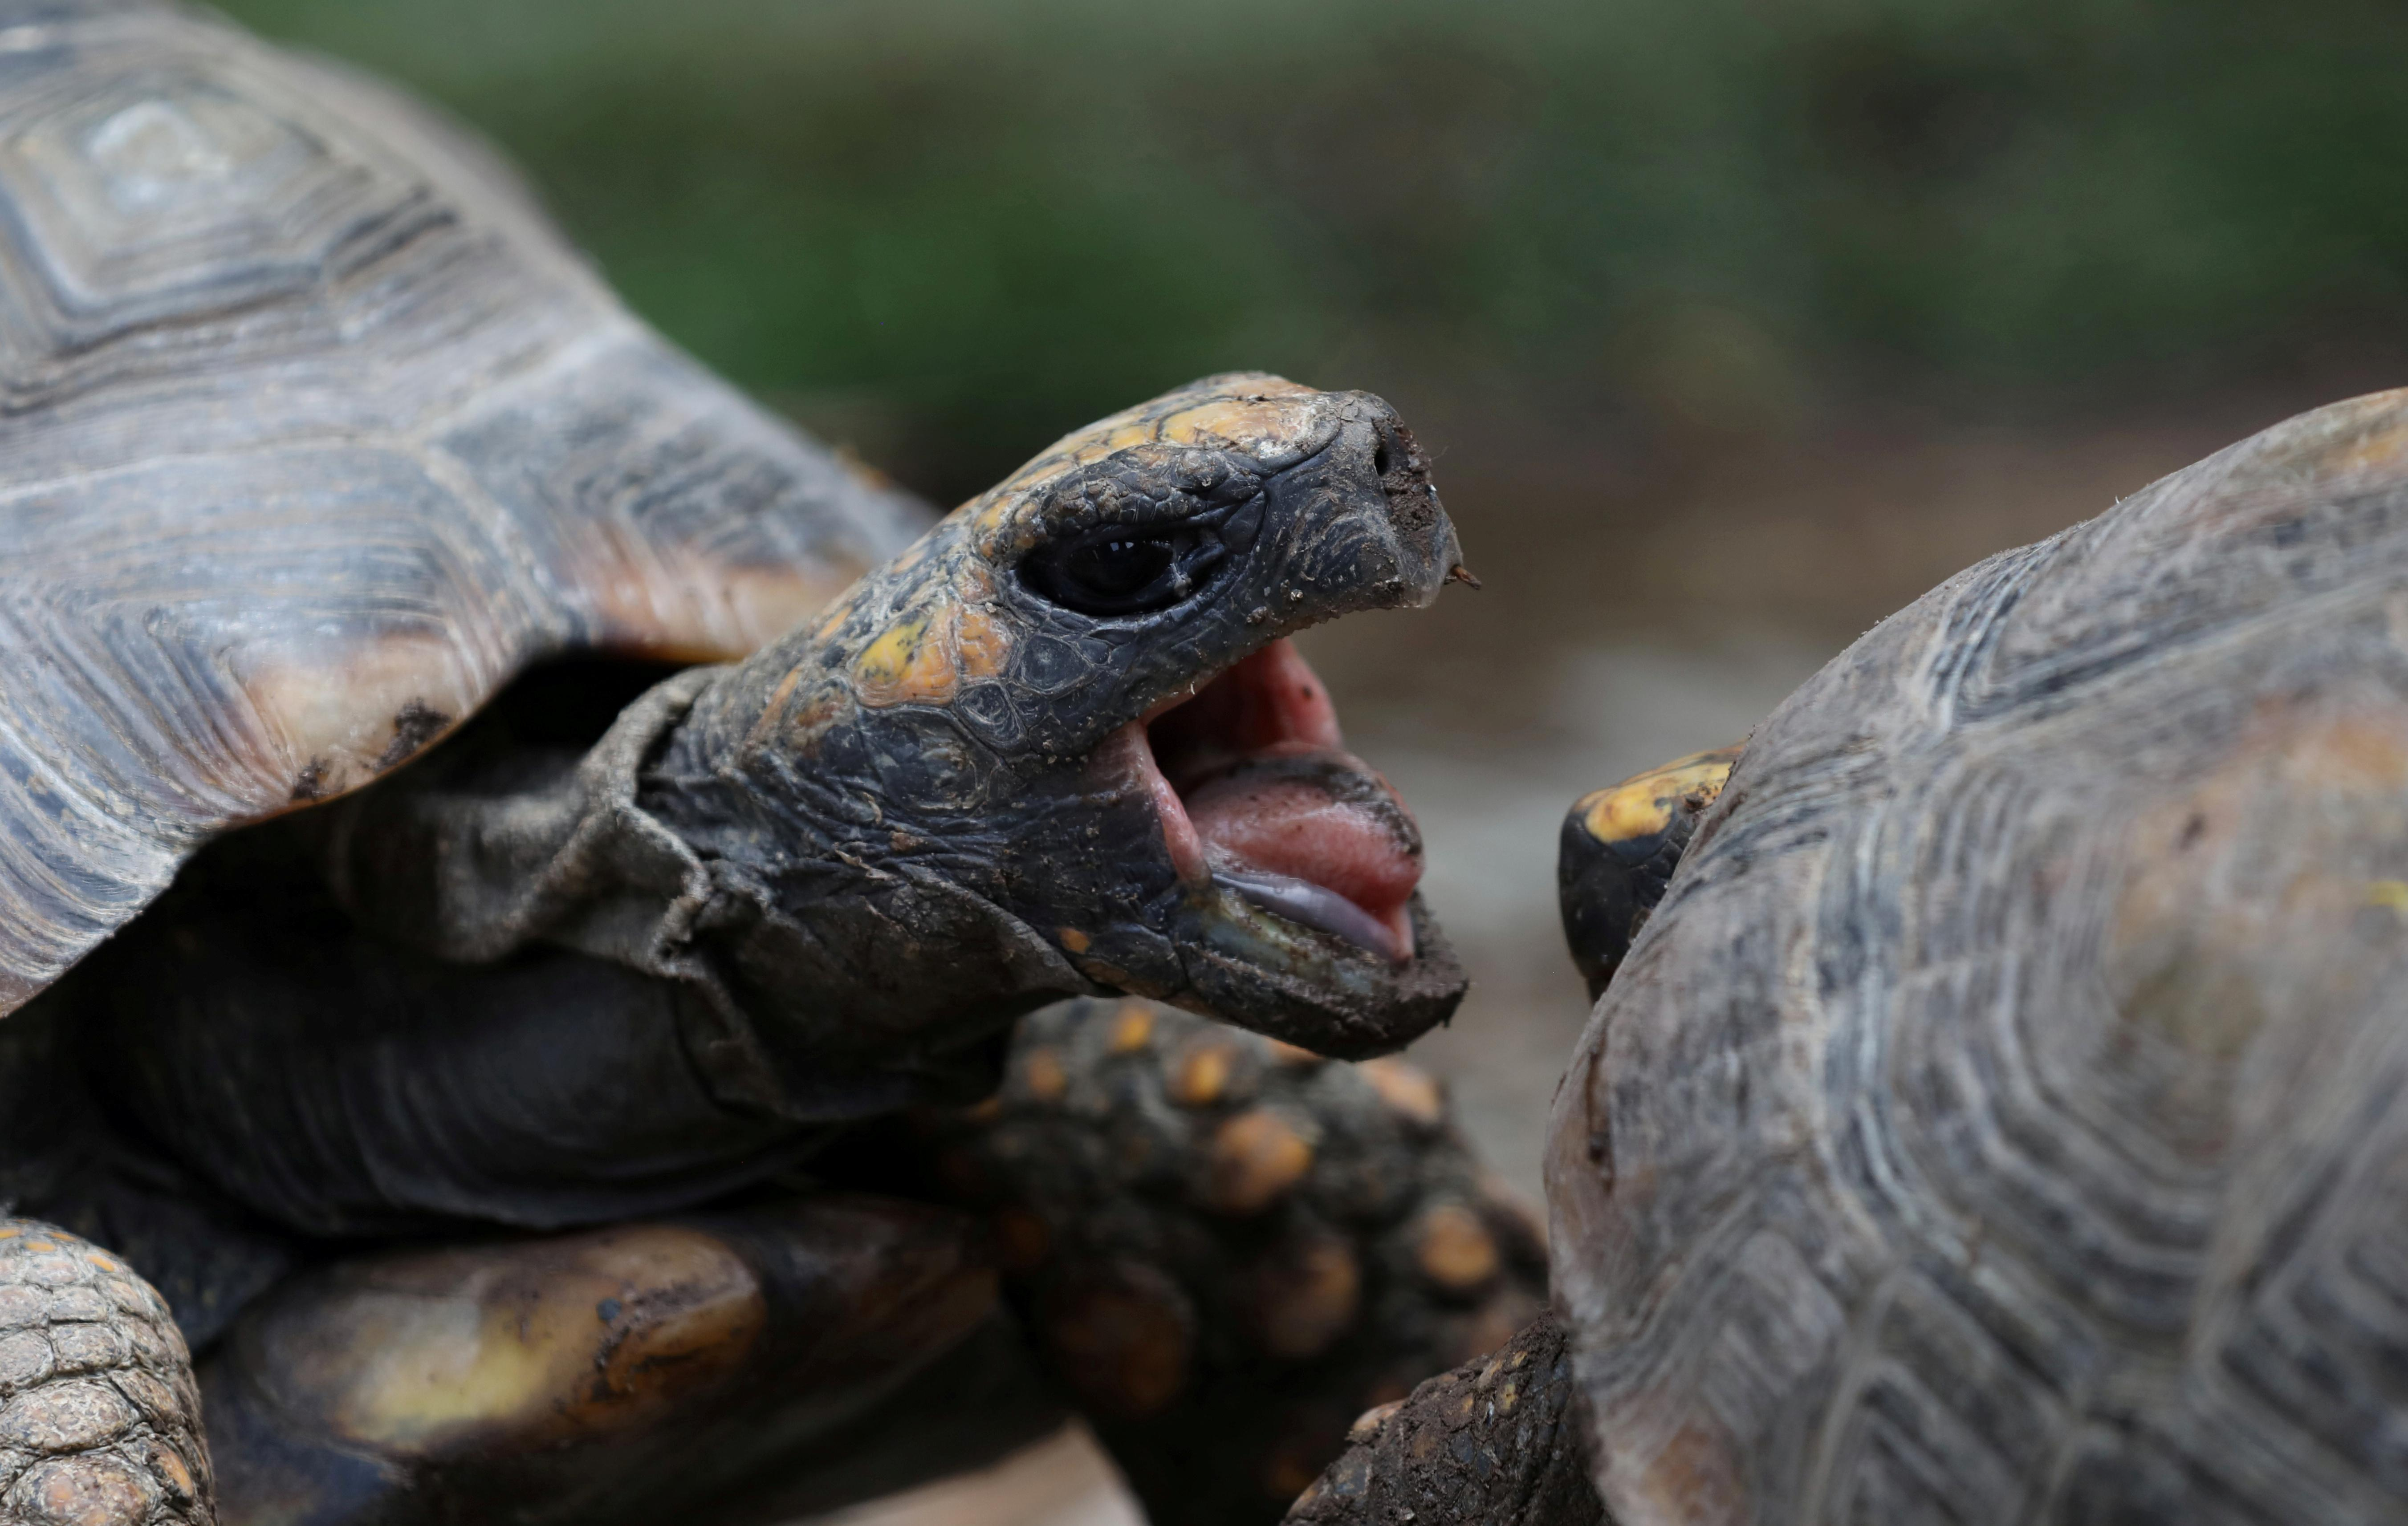 Florida man threatens to destroy everyone with army of turtles, police say